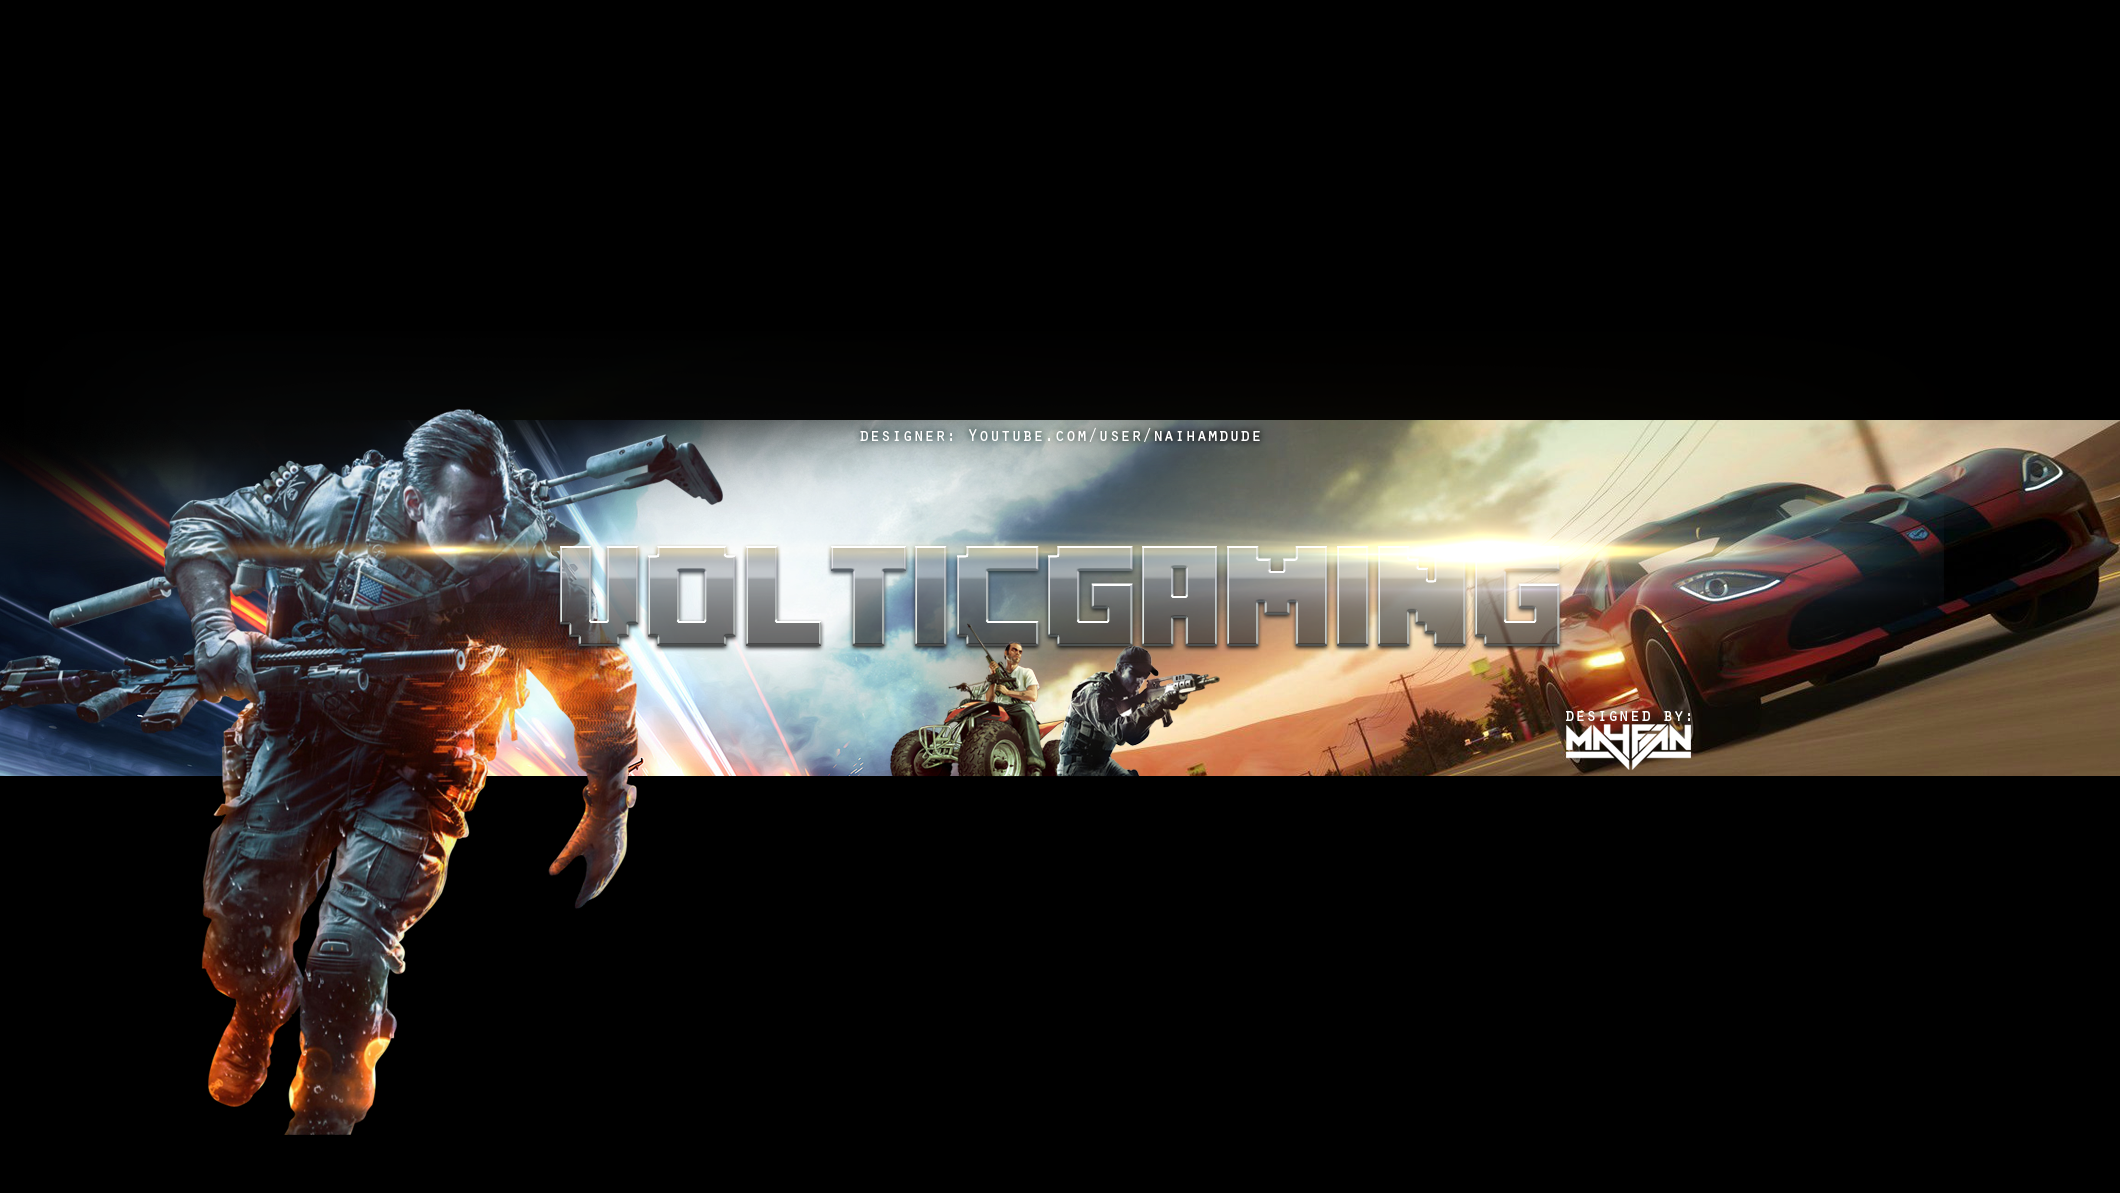 VolticGaming Youtube Channel Art by VintagePeon on DeviantArt